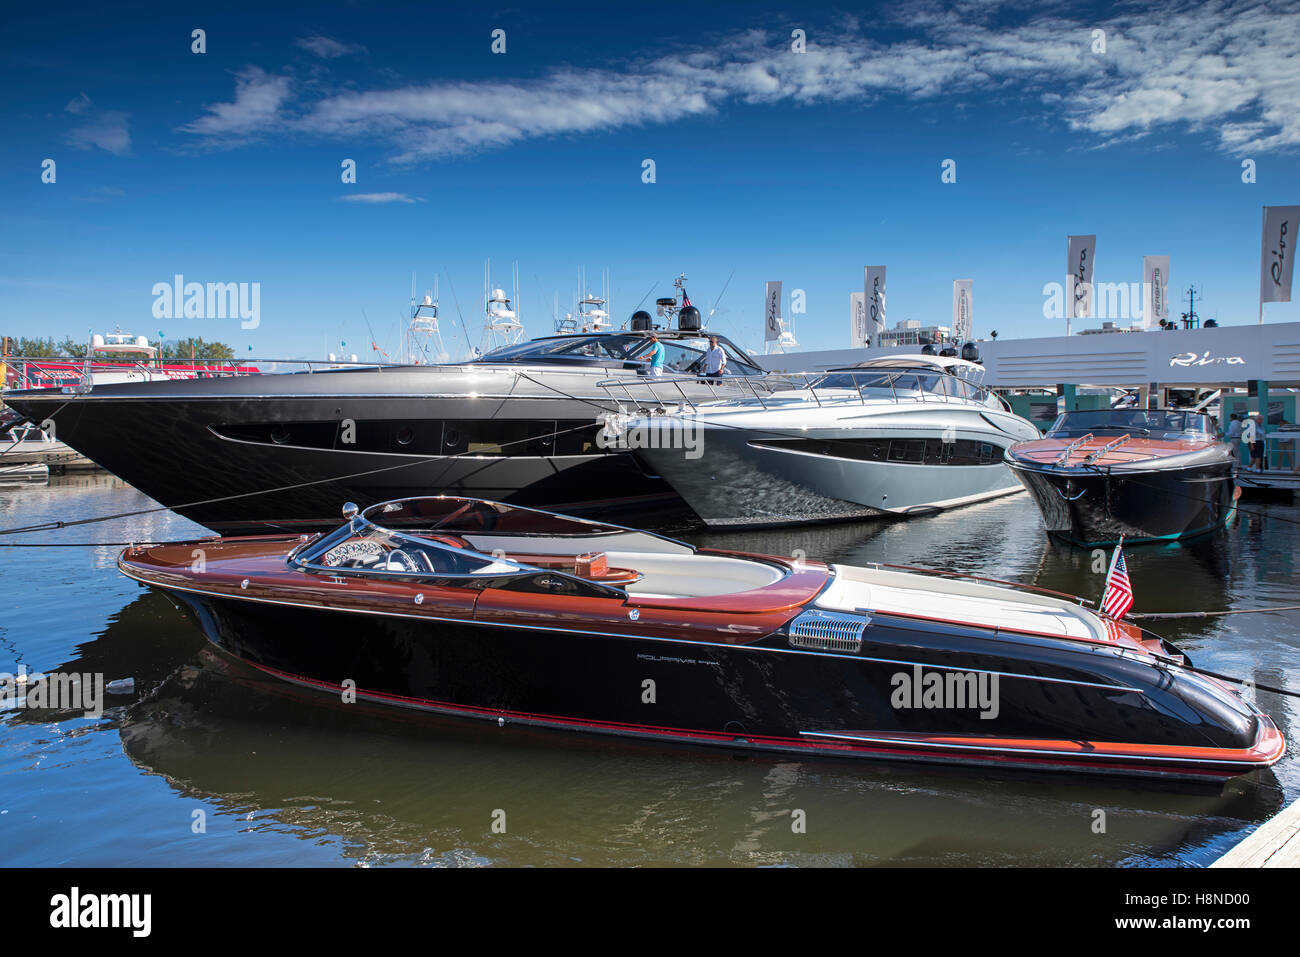 Riva boats at Fort Lauderdale Boat Show Stock Photo